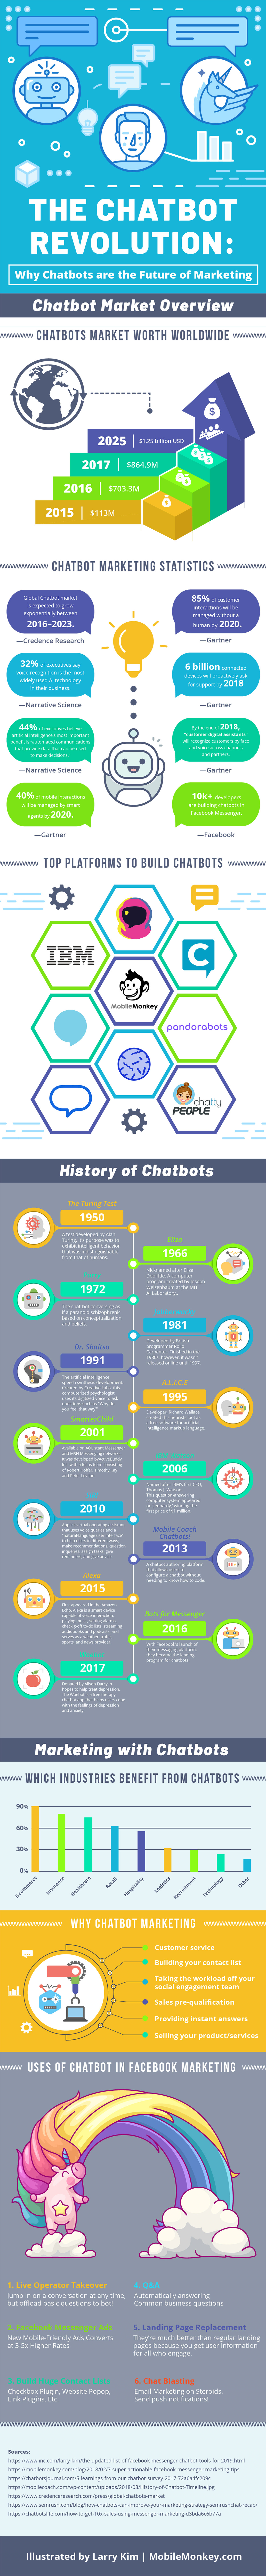 Infographic: Why Chatbots Are The Future of Digital Marketing